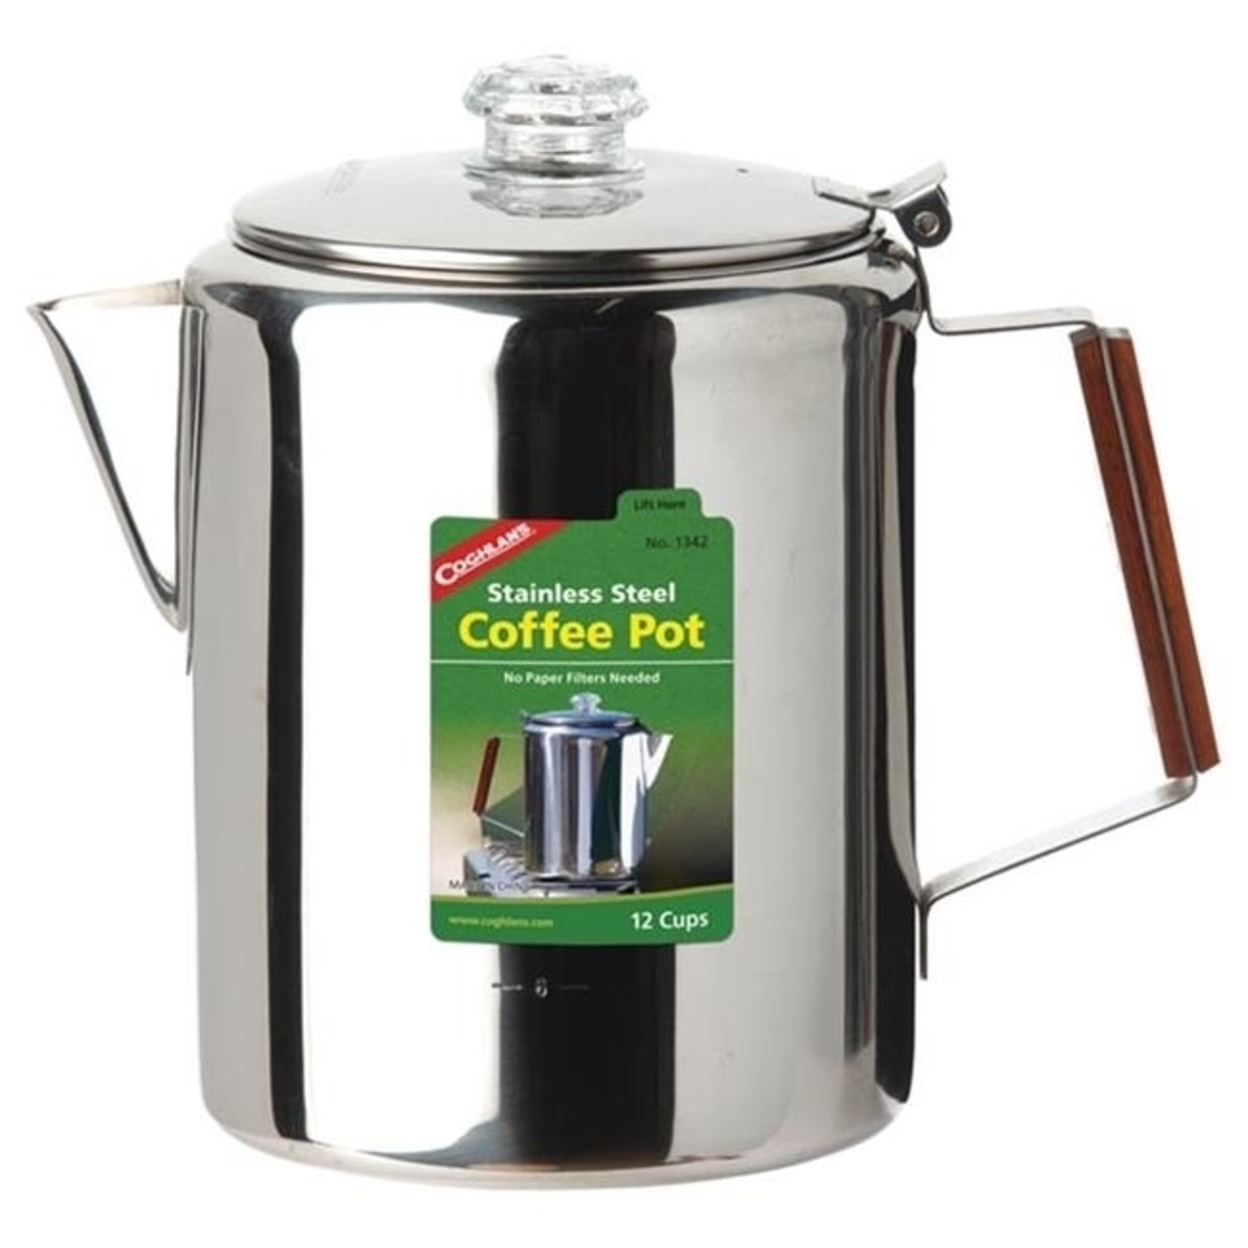 12 Cup Stainless Steel Coffee Pots 5a3d90ef2a00e47b3d274899